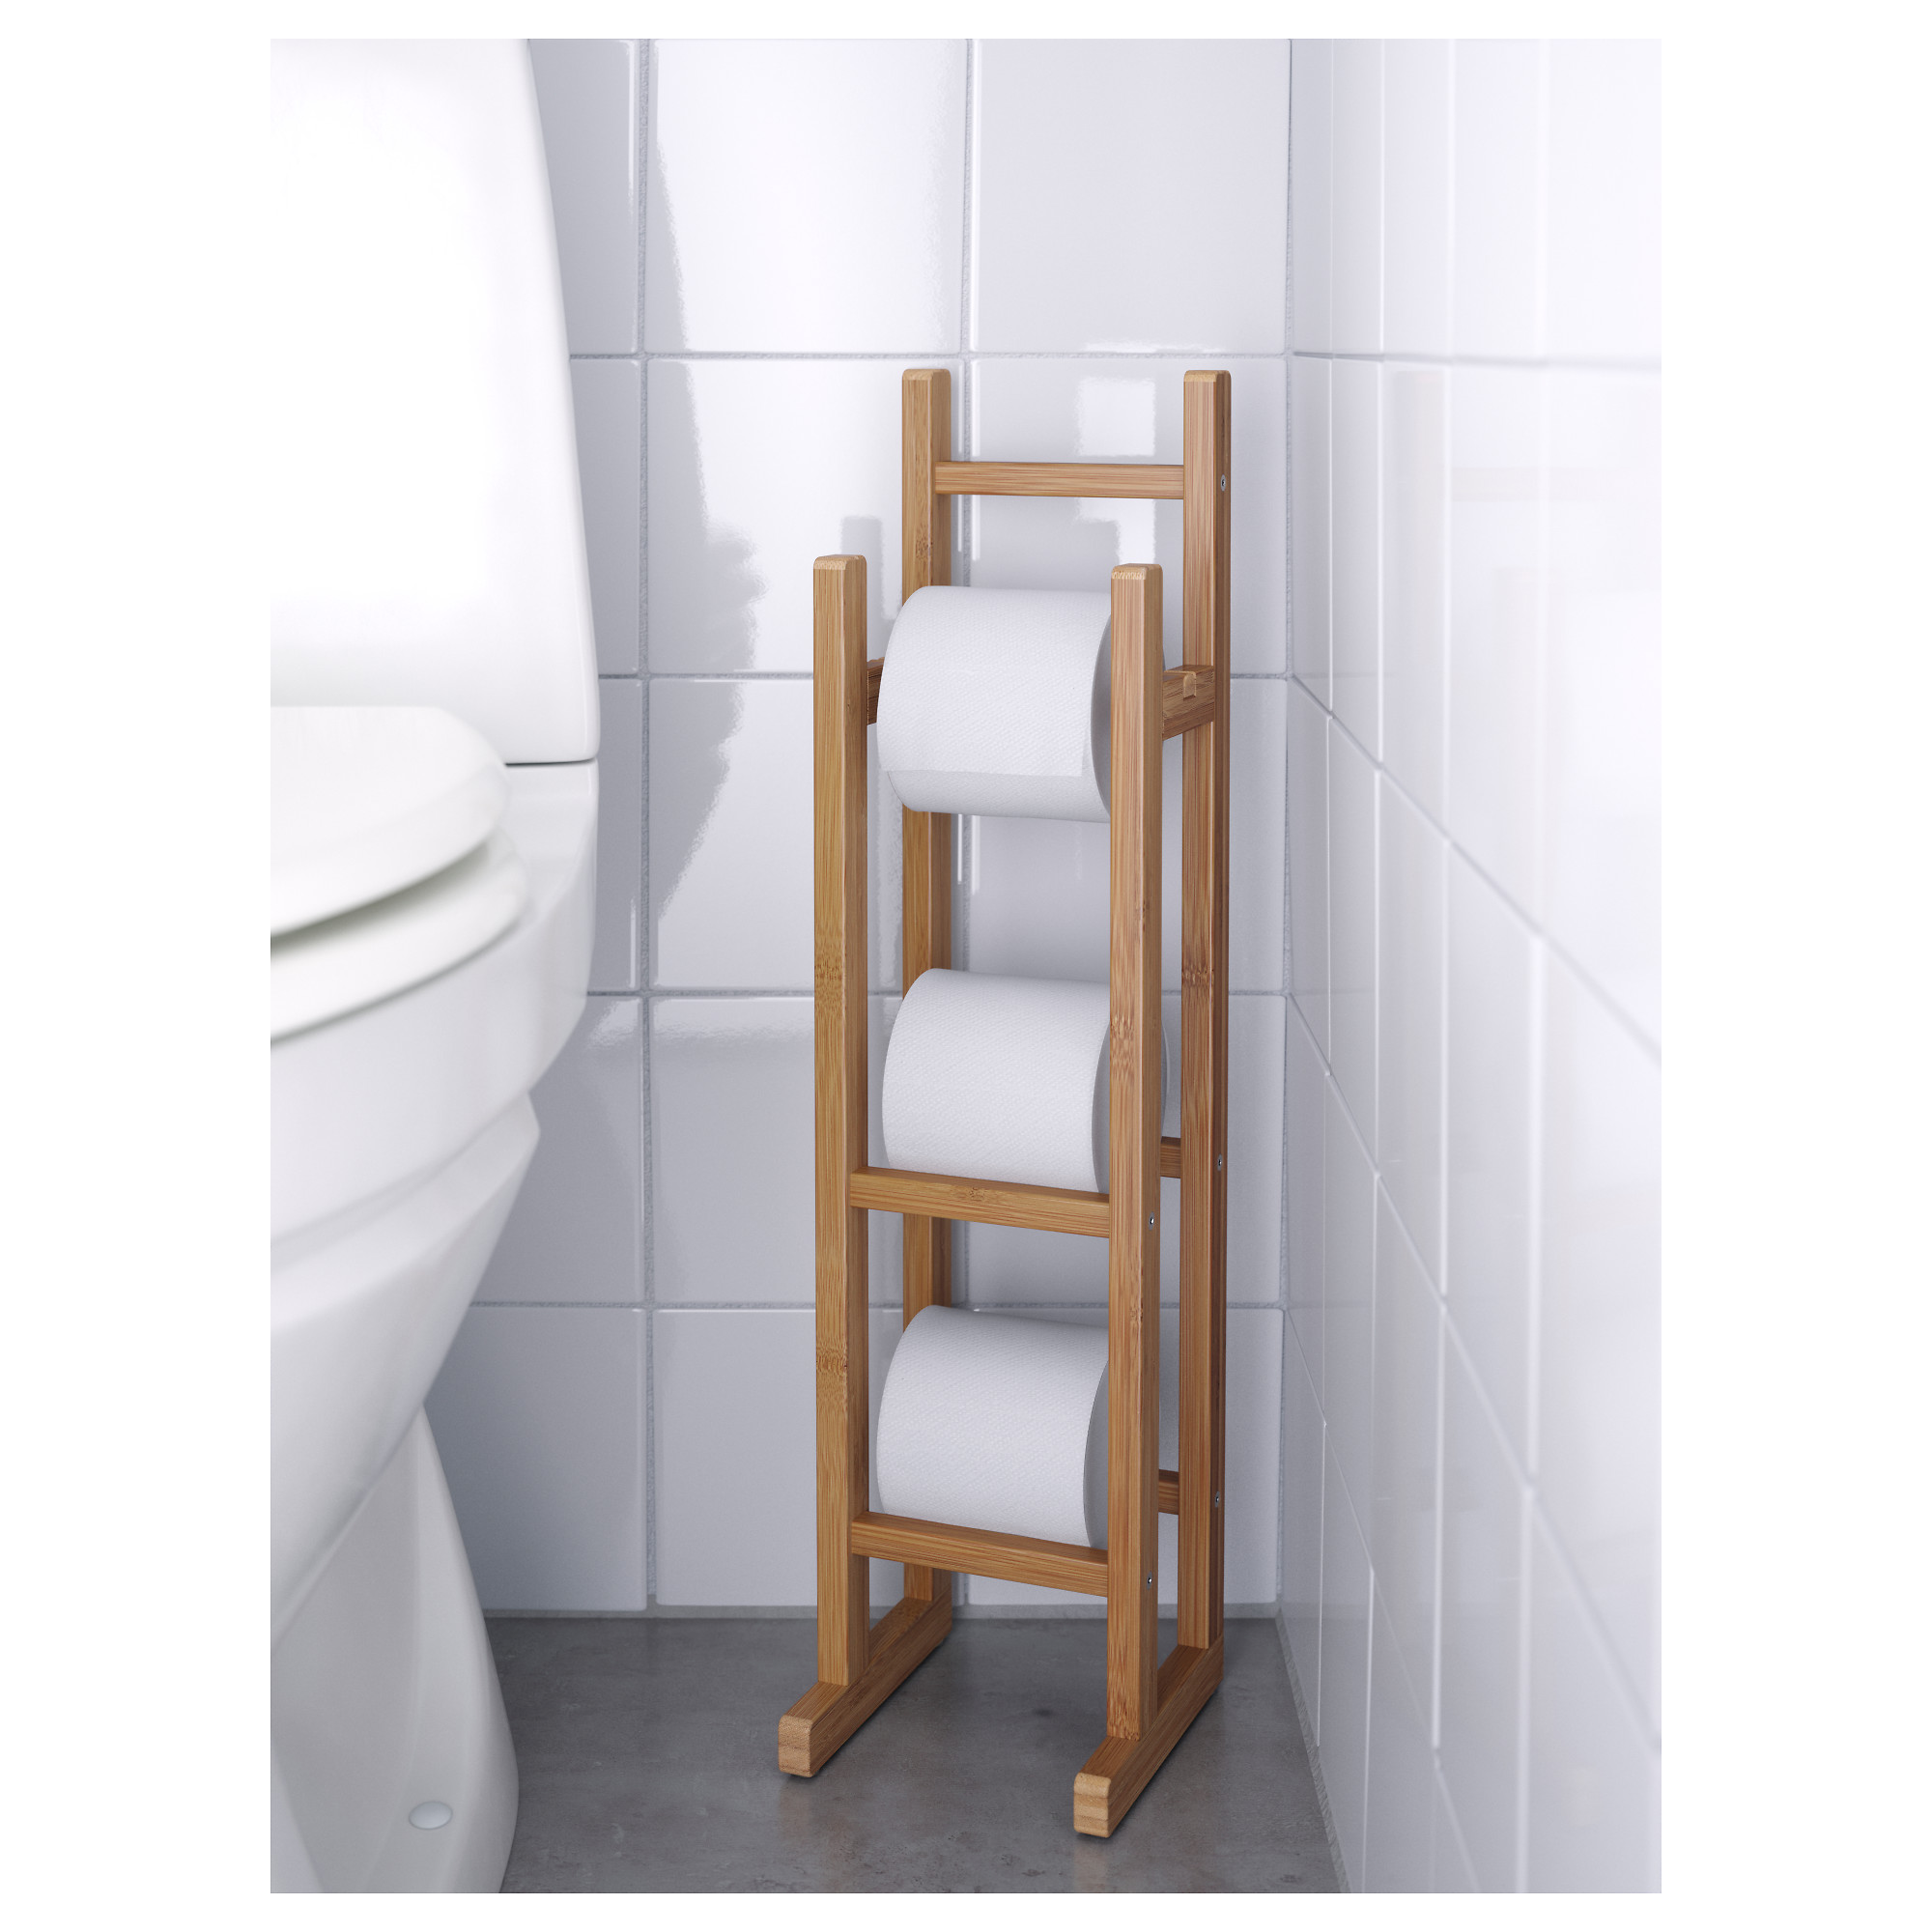 Ikea RÅgrund Toilet Roll Stand You Can